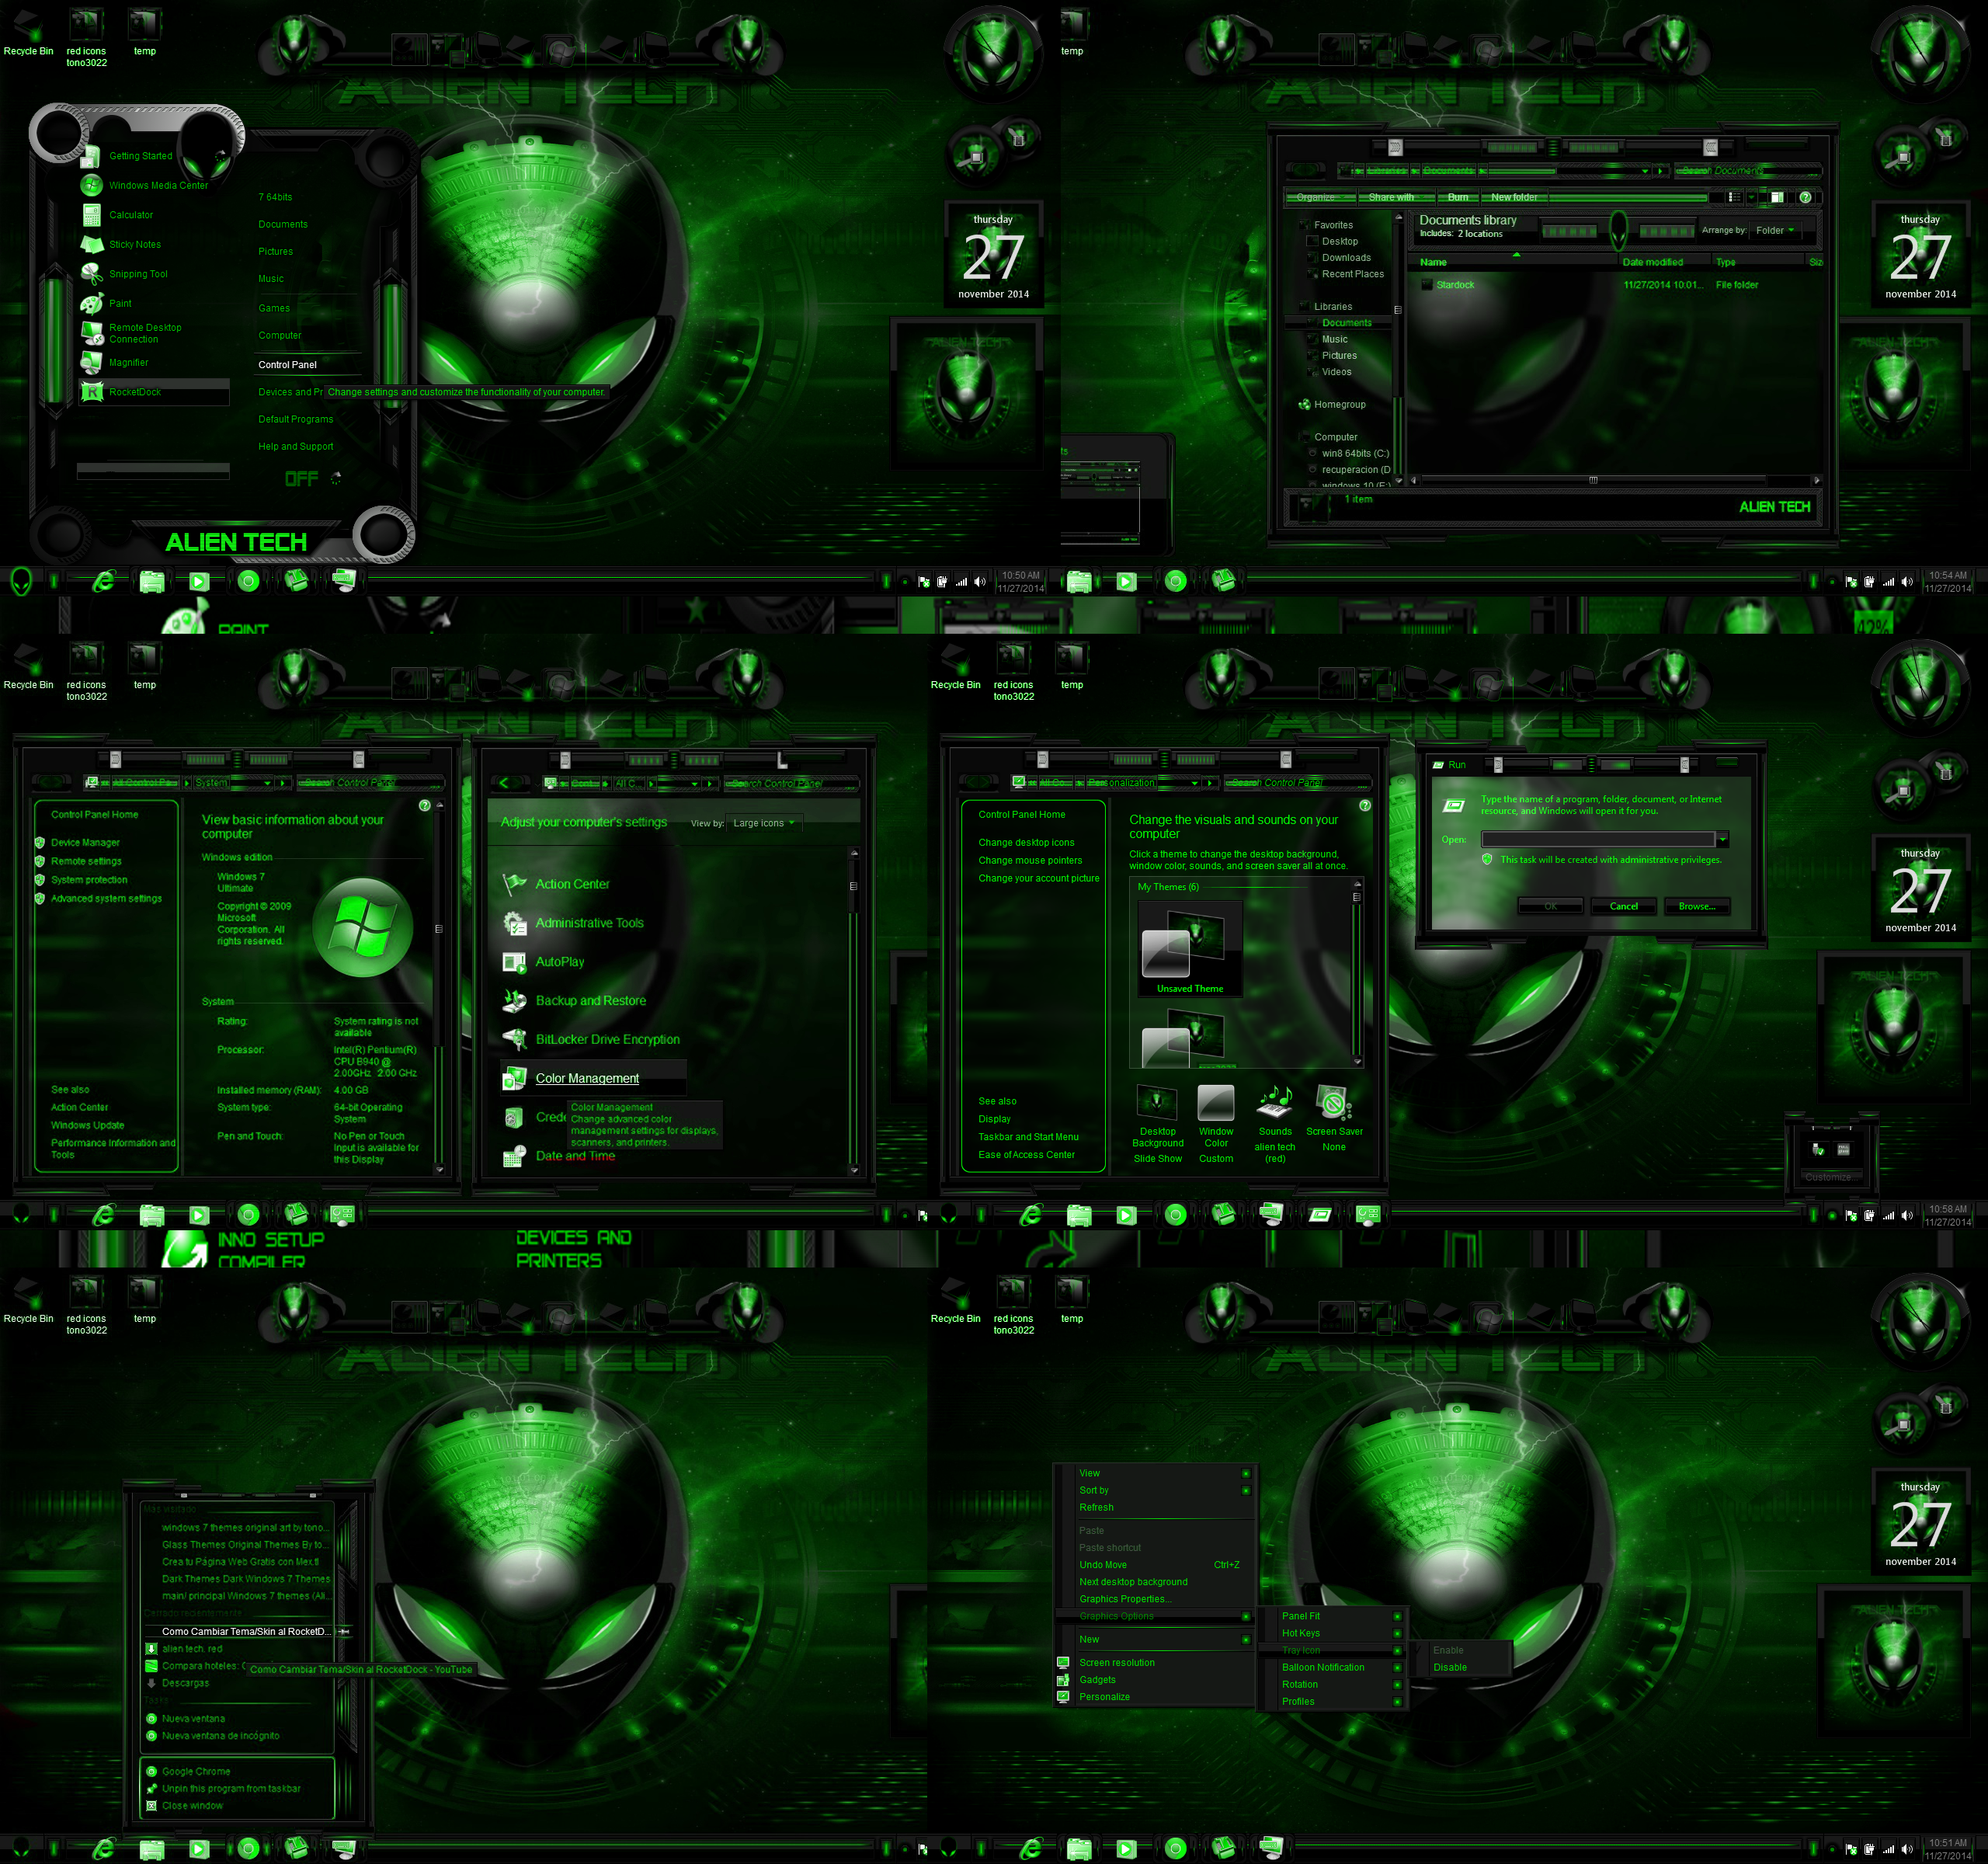 windows 7 themes alien tech... green by tono3022